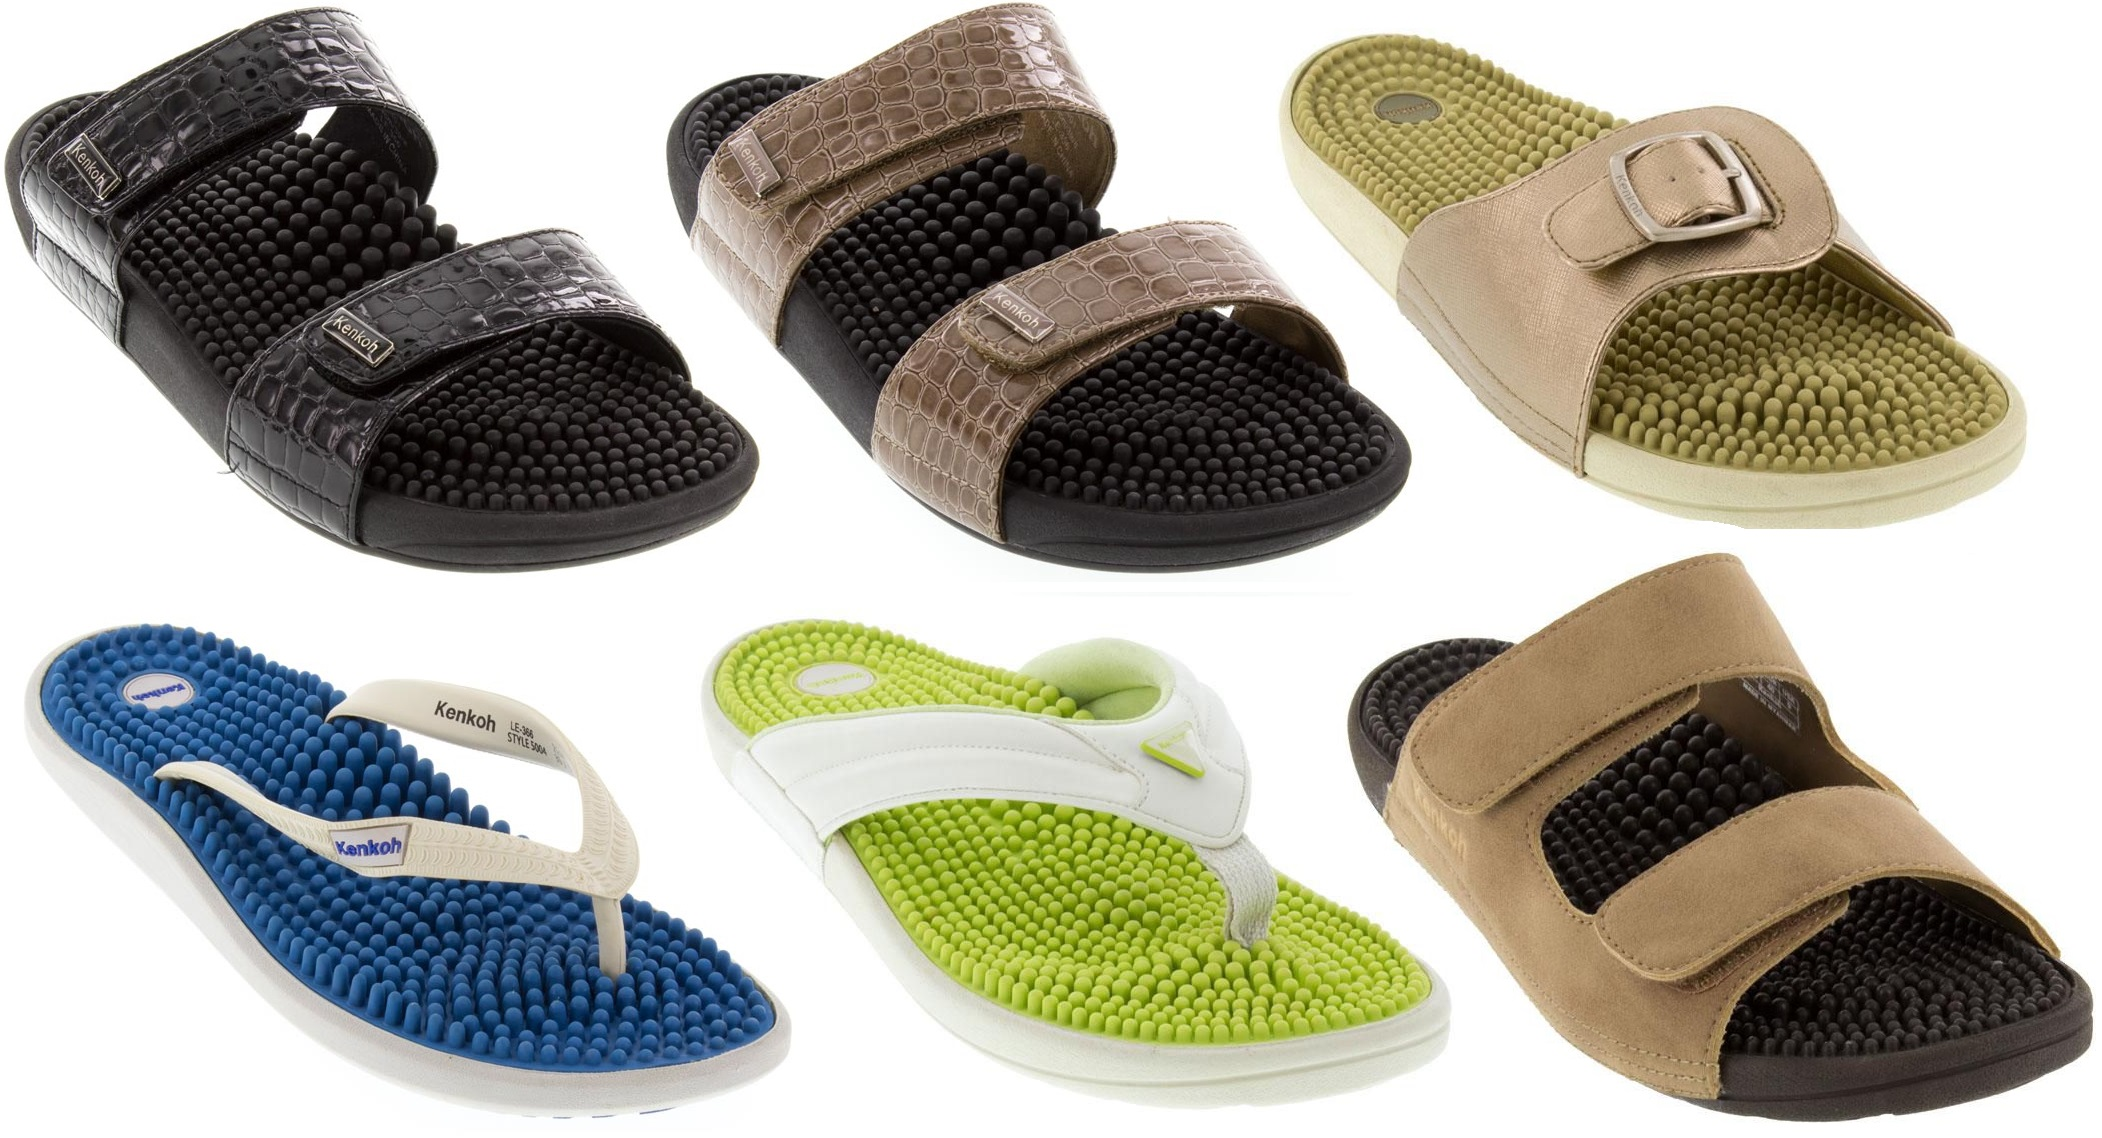 Kenkoh Massage Sandals